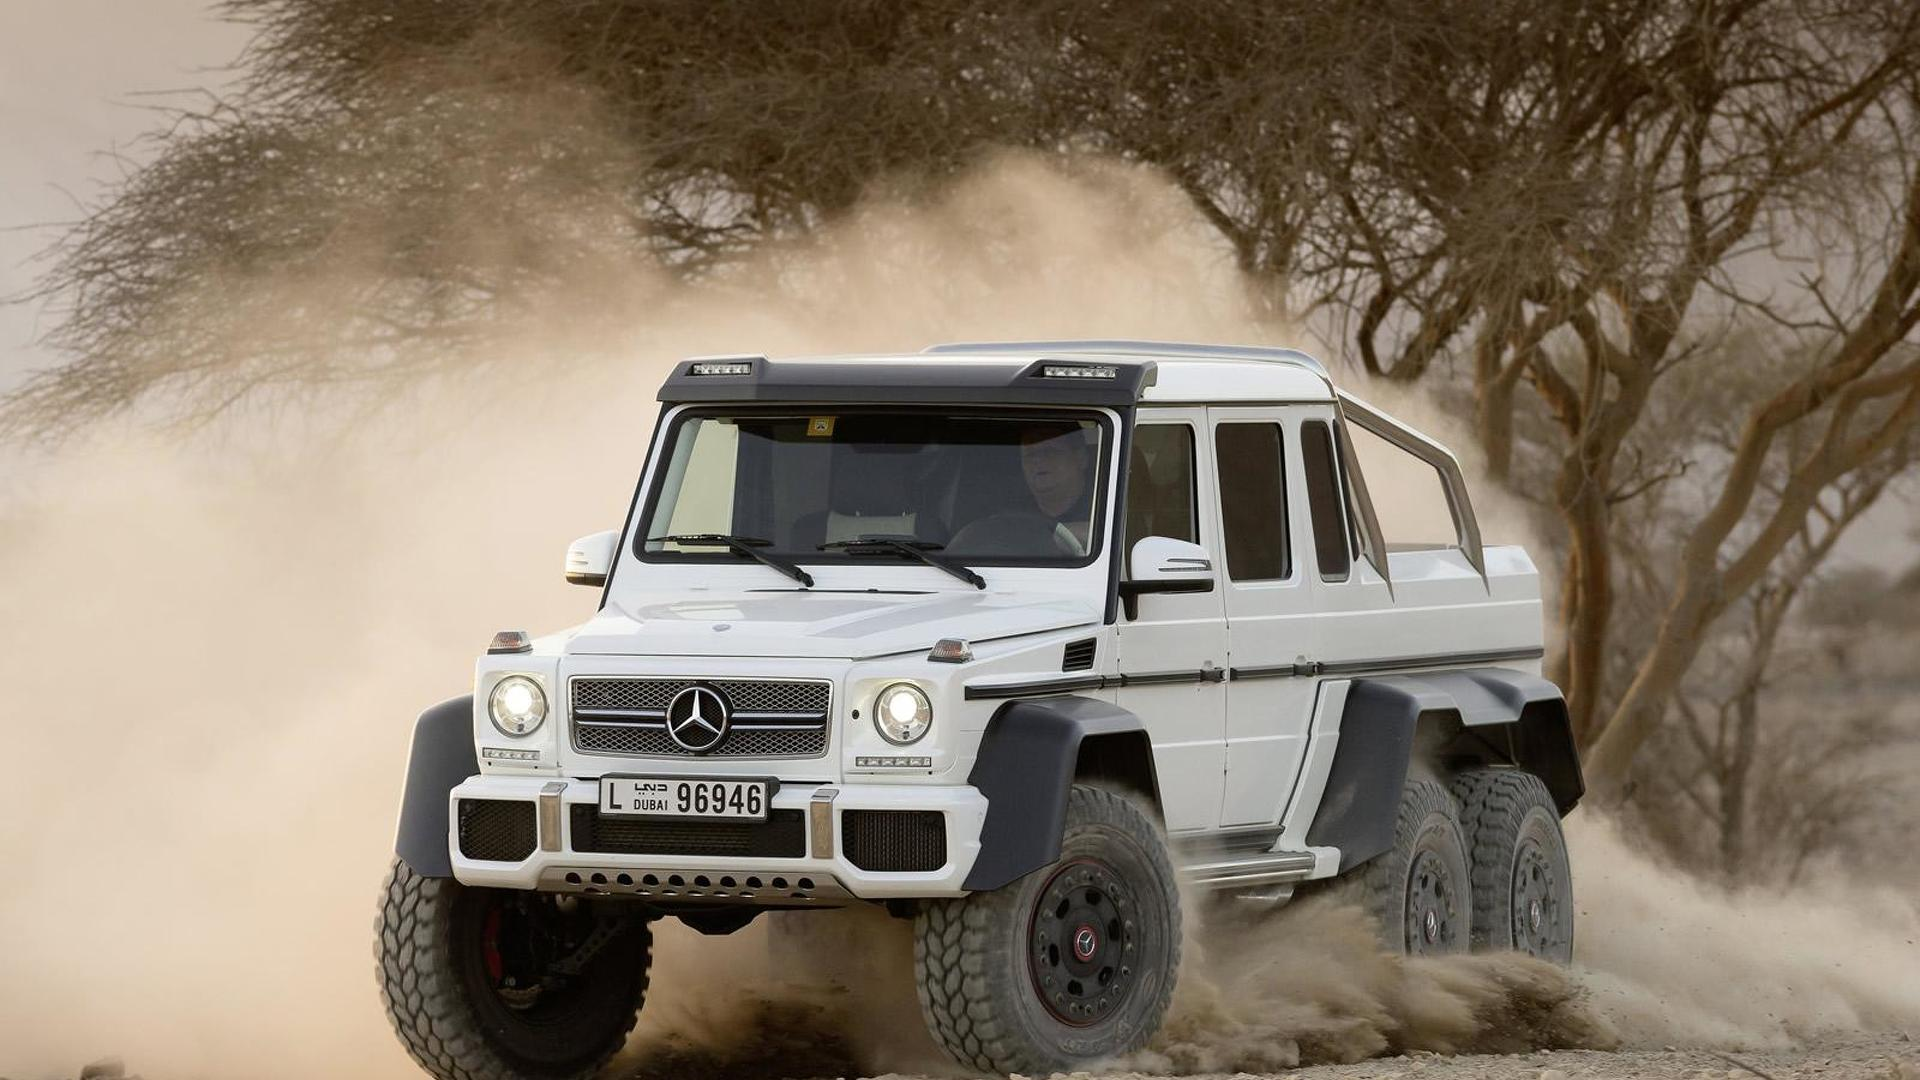 Texas Armoring offers an armored Mercedes G63 AMG 6x6, costs